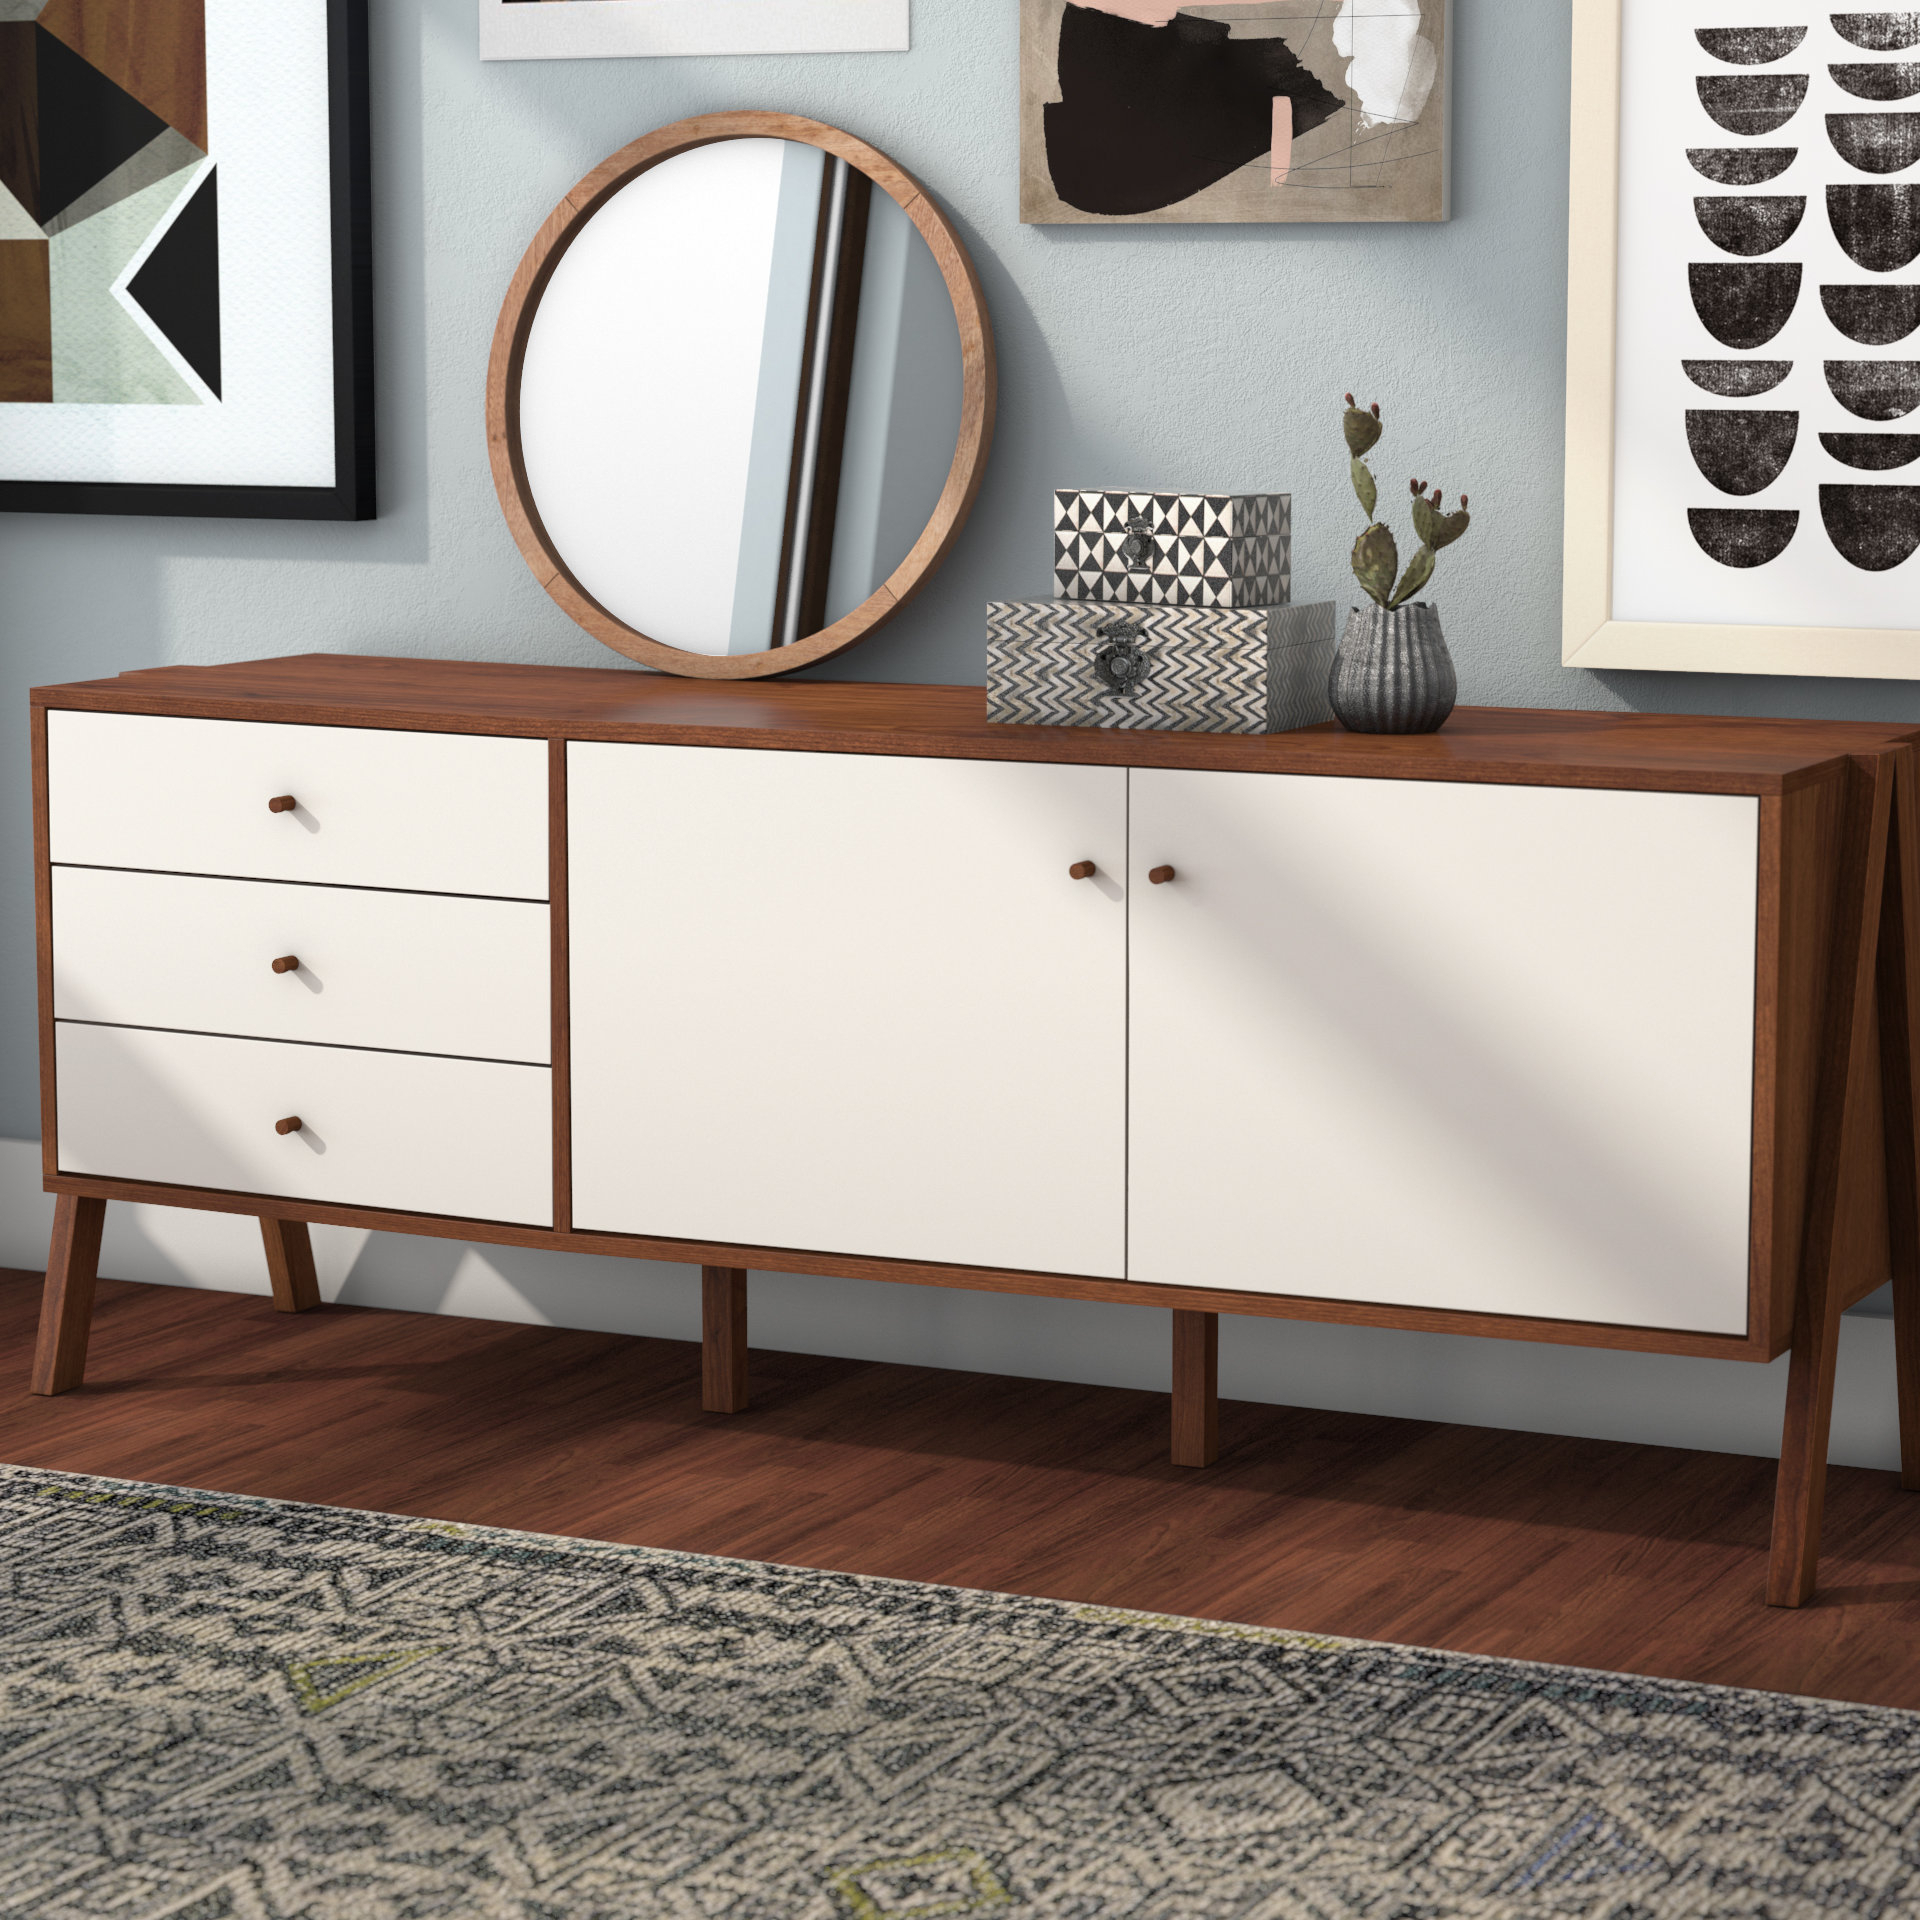 Extra Large Credenza | Wayfair With Most Current Barr Credenzas (#9 of 20)